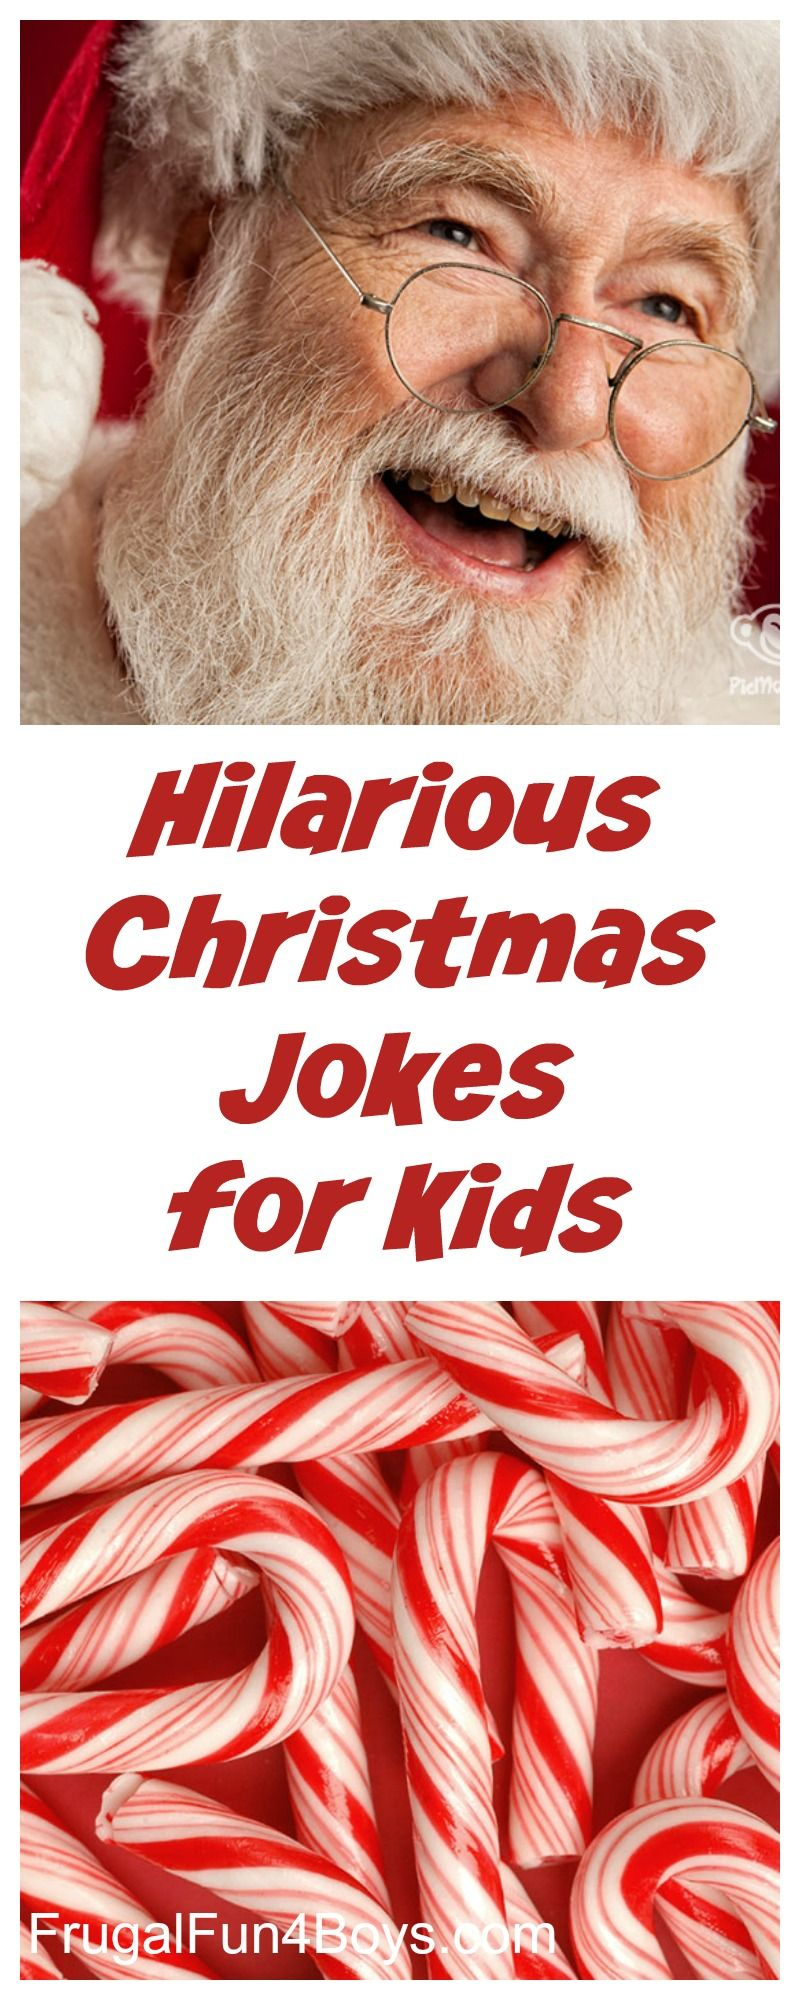 hilarious christmas jokes for kids these jokes will have kids laughing like santa and his belly like a bowl full of jelly - Childrens Christmas Jokes